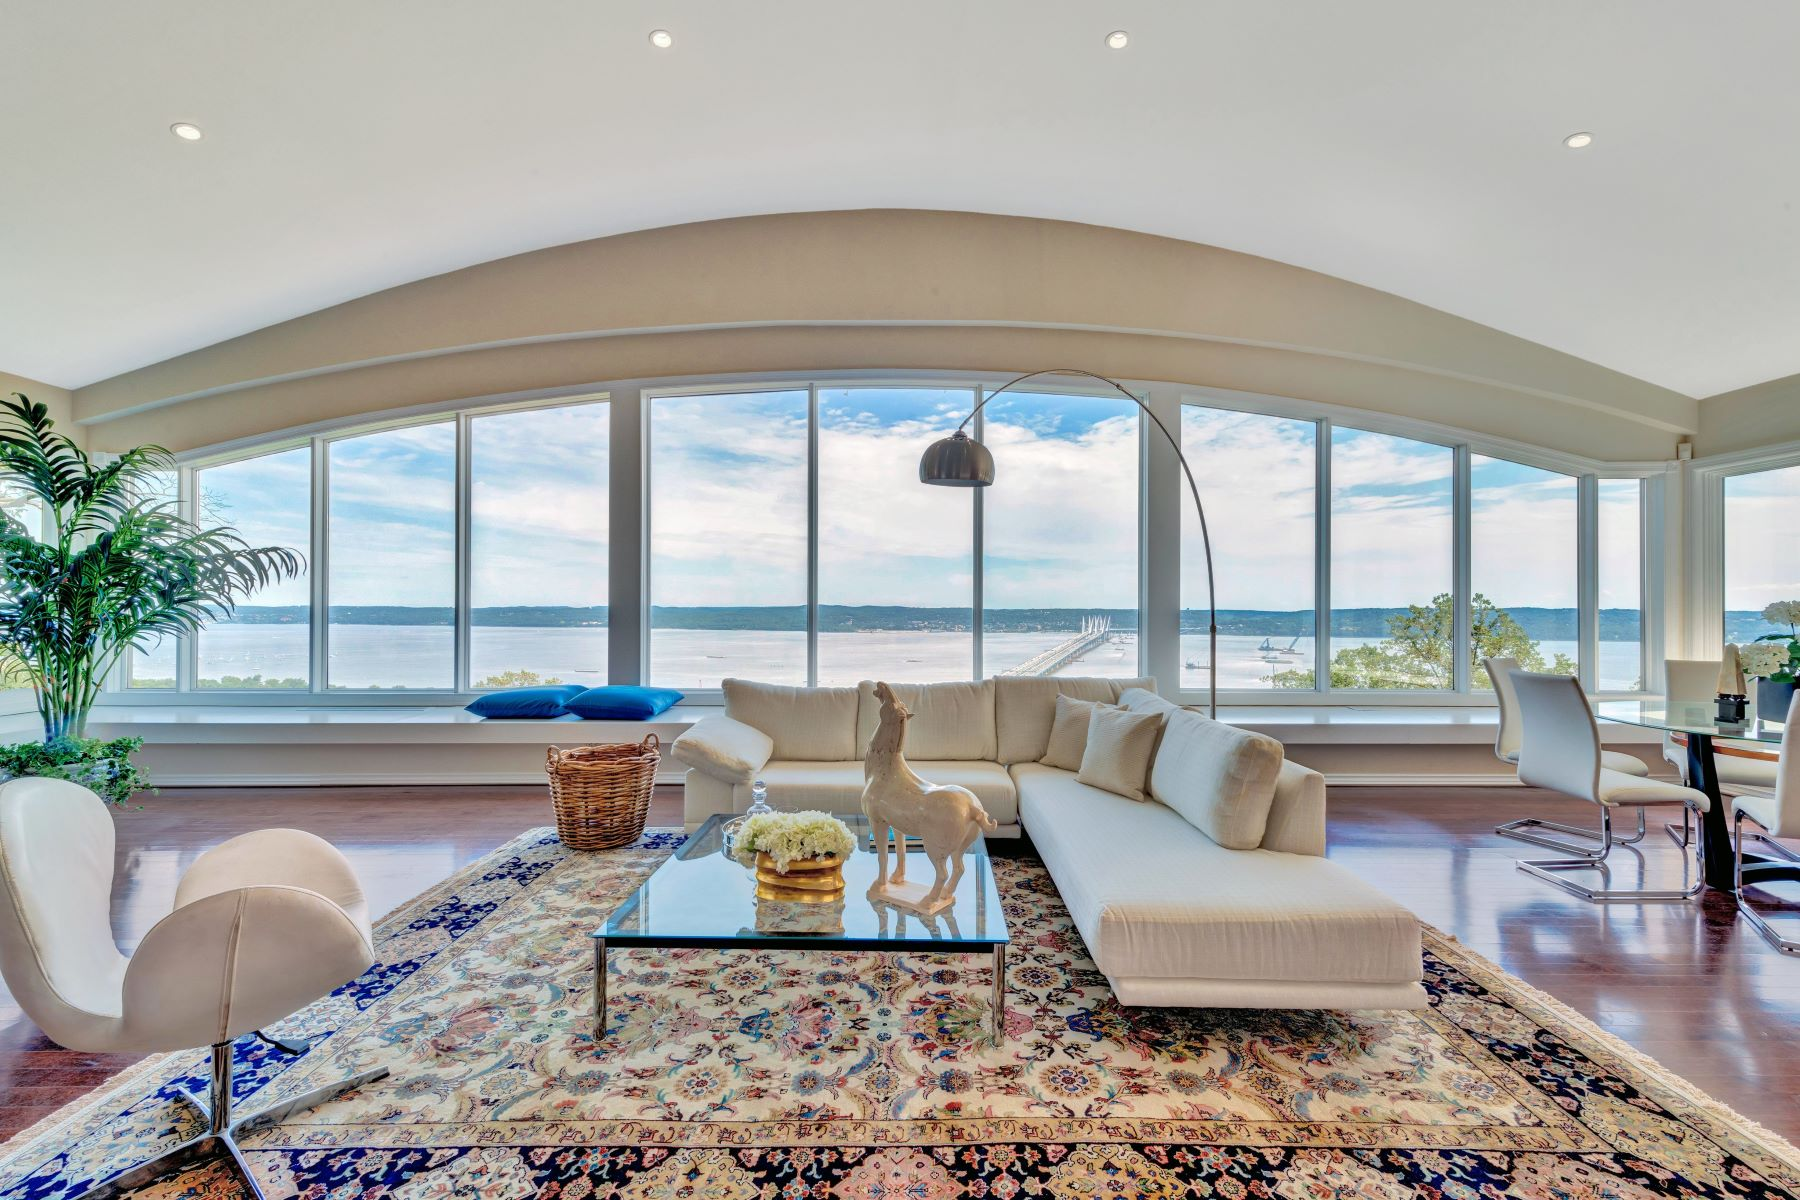 Single Family Homes for Sale at Expansive Hudson River Views! 9 Tweed Blvd. Upper Grandview, New York 10960 United States